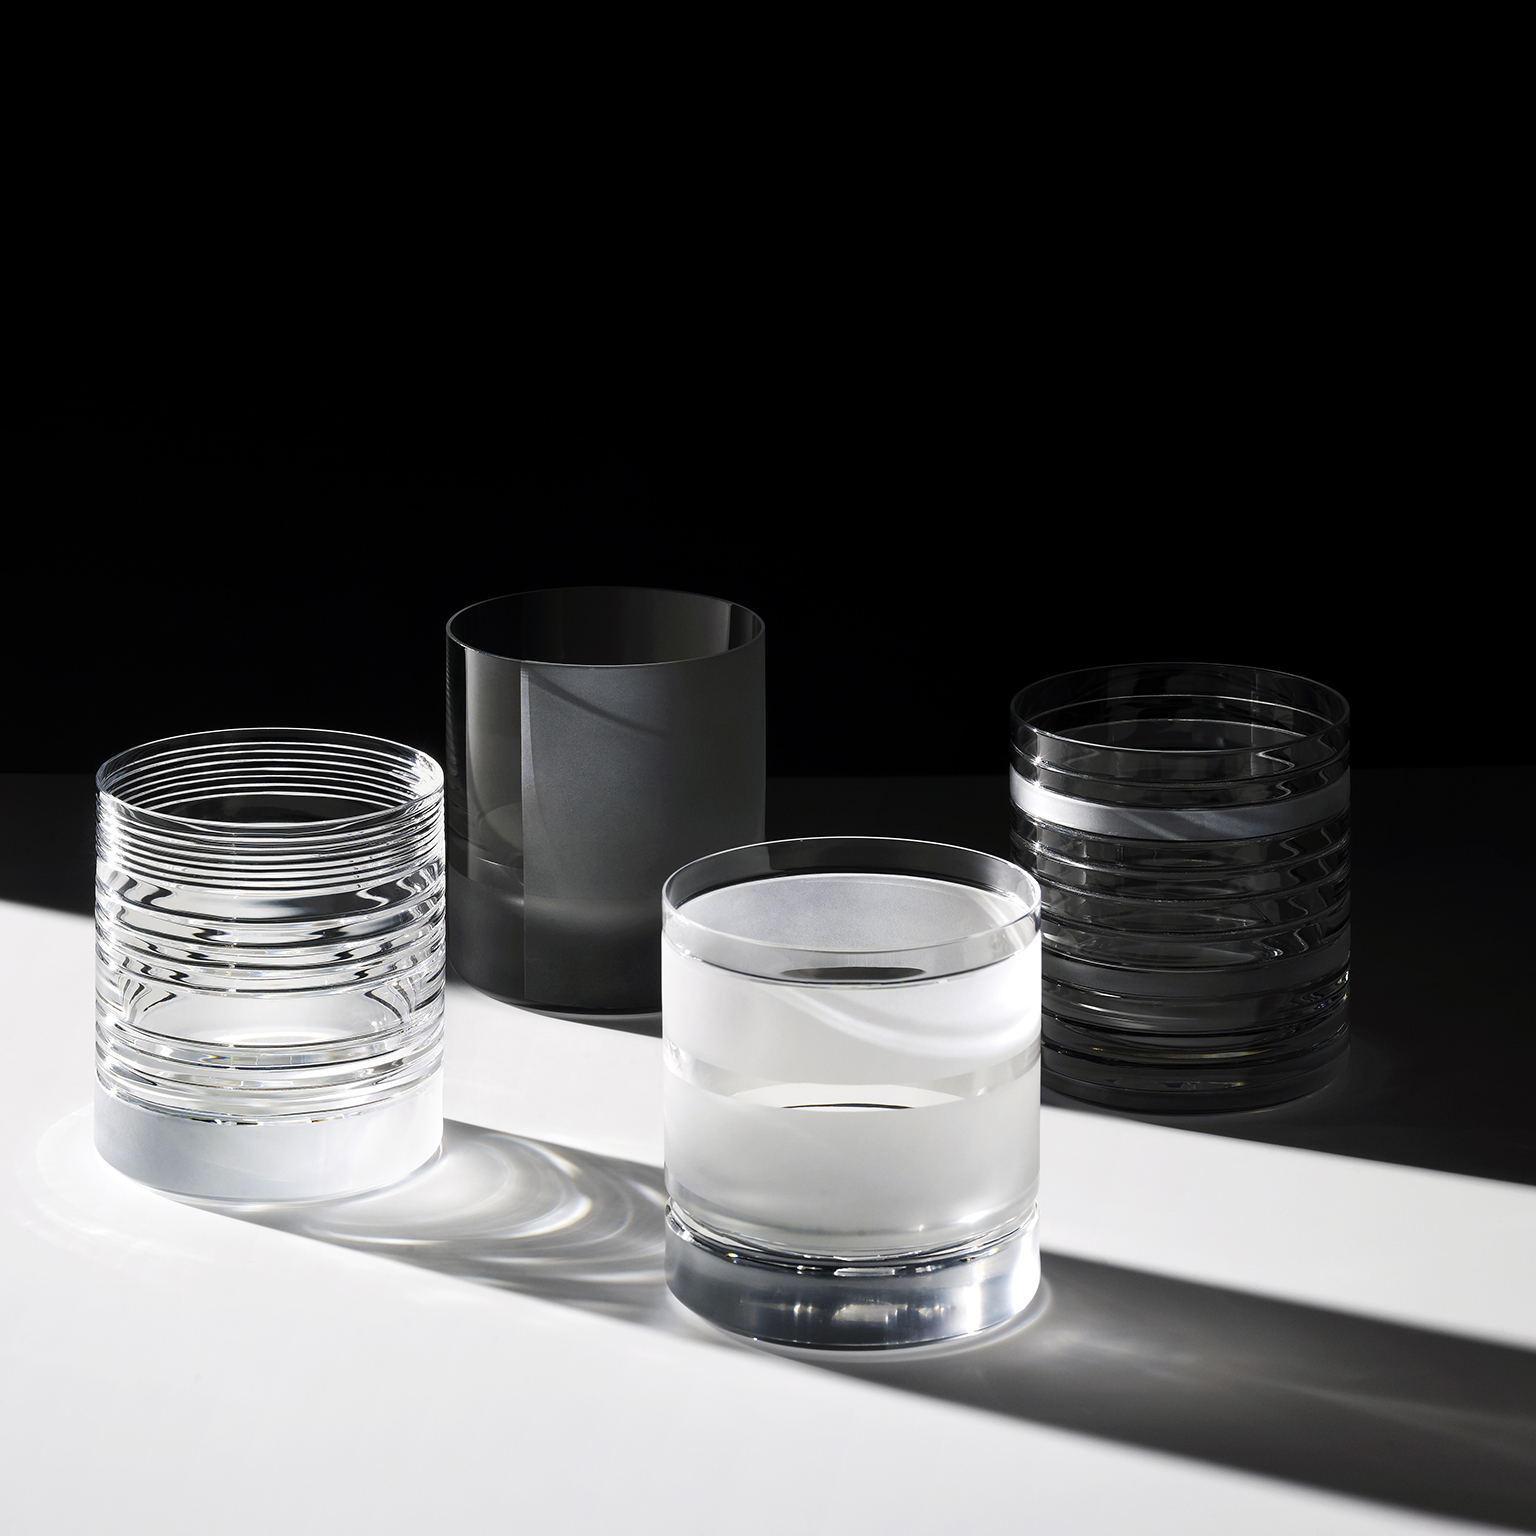 """Element Low Glasses - Set of 6 - A rich assemblage of graphic markings defines the """"ELEMENTS"""" series of lead crystal. Cuts and textures of varying depth and intensity are employed across glasses to create a landscape of layered pattern that is fresh and seductive; a whole new take on the decoration of cut crystal. Sold as a set of 6 low glasses.  